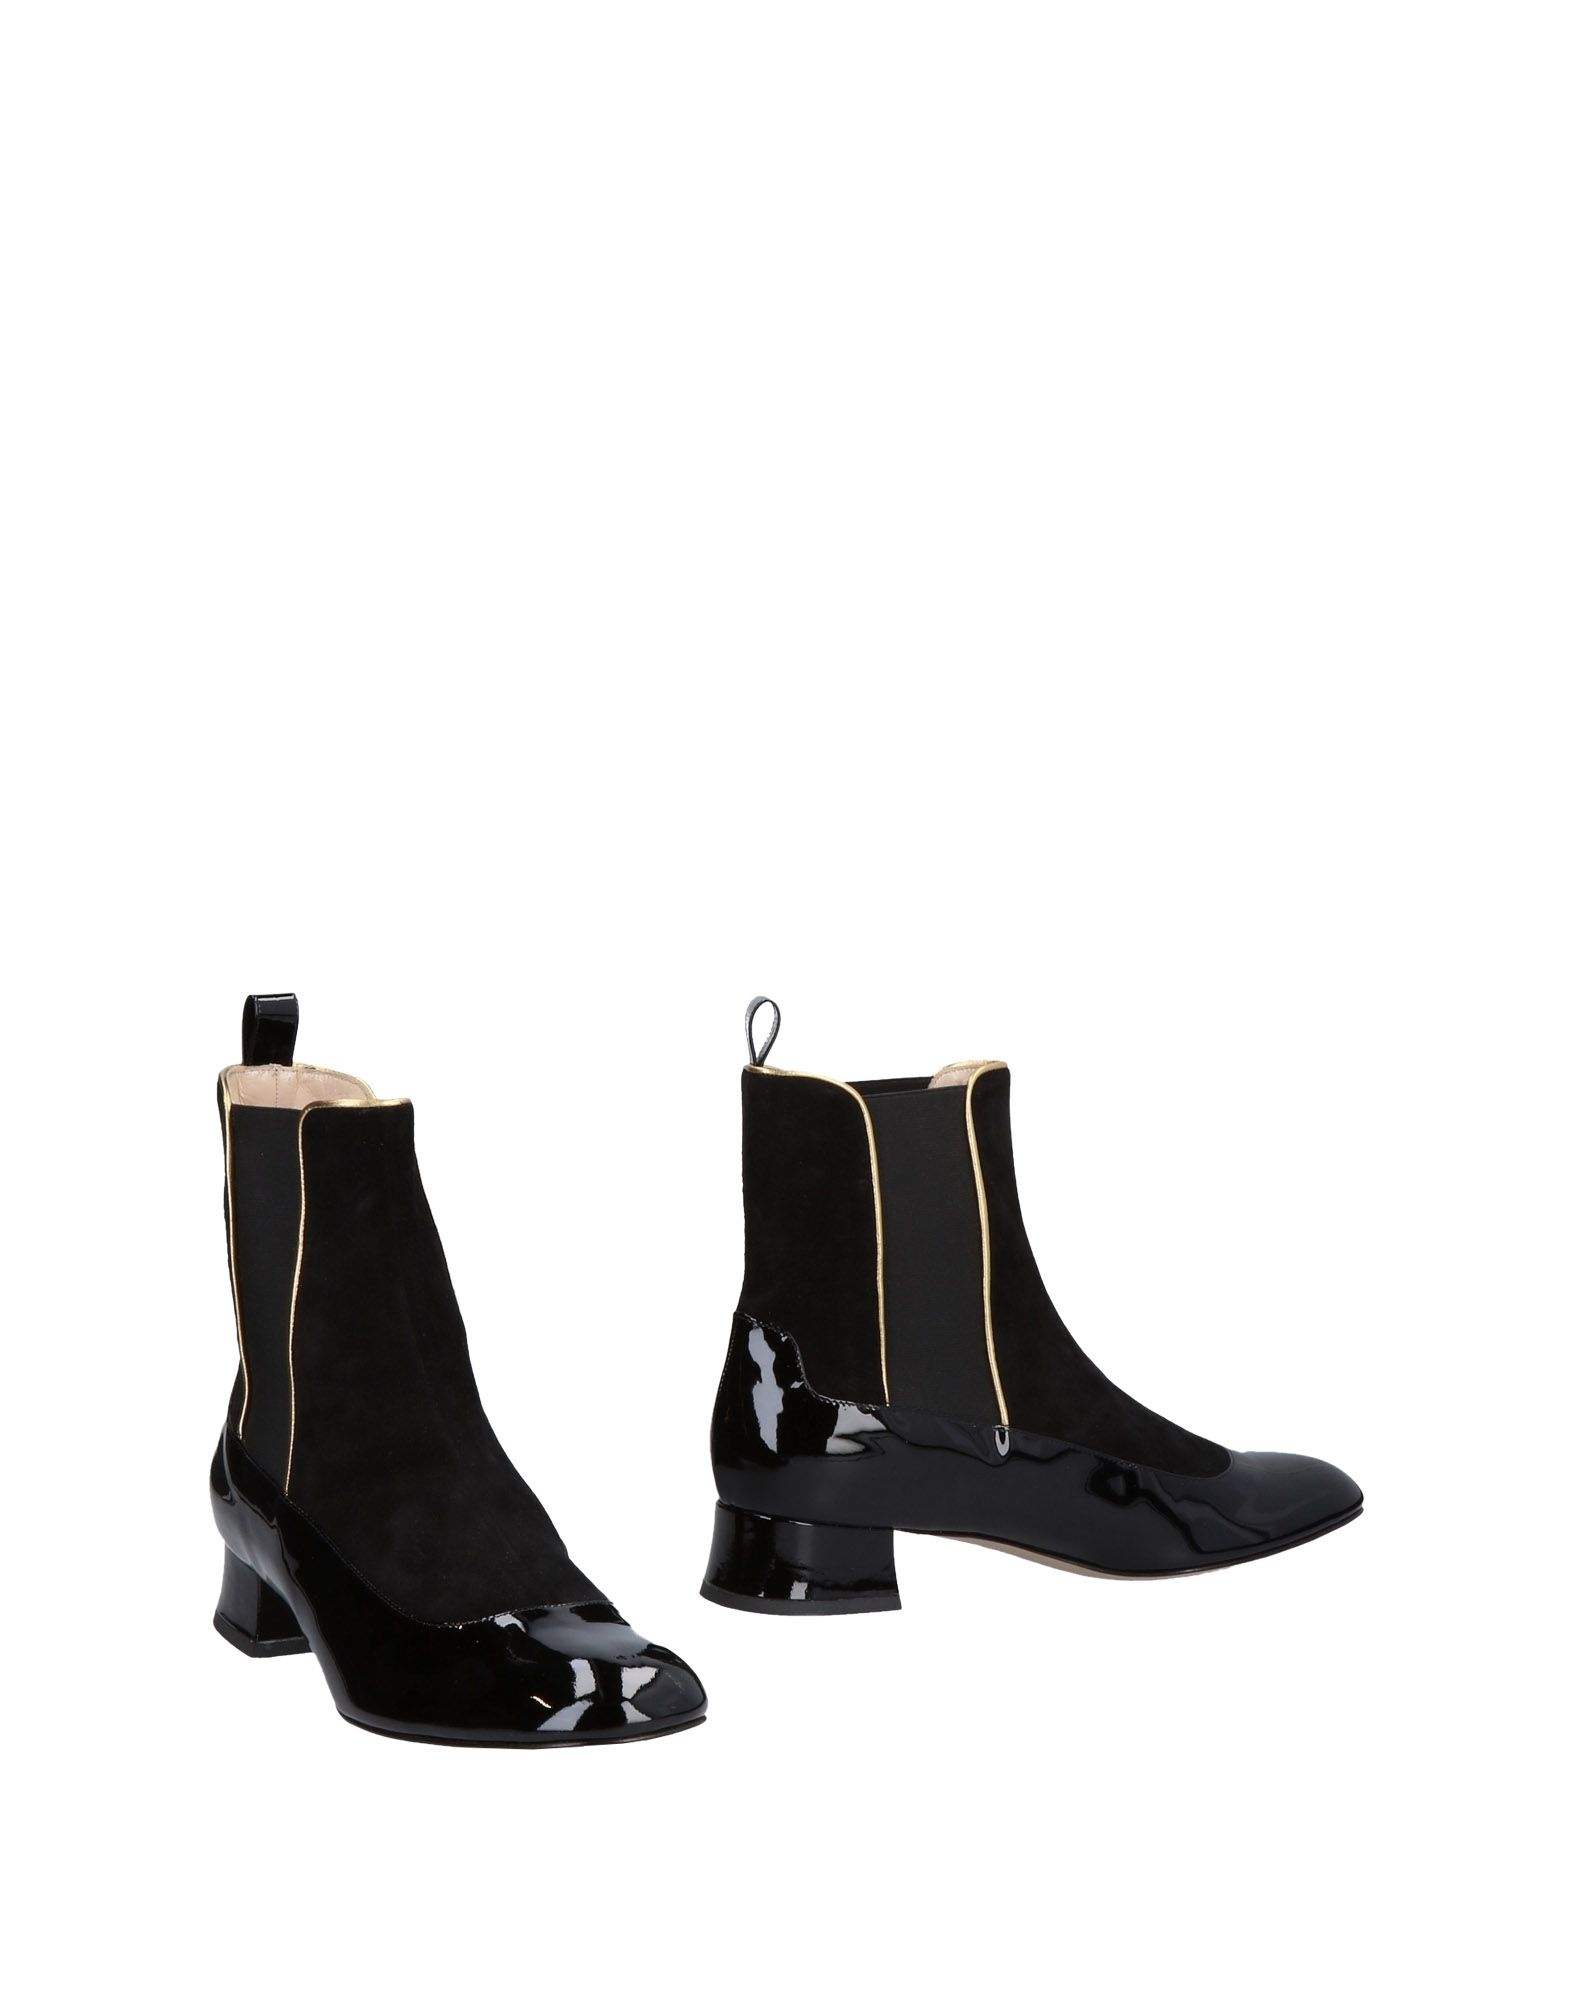 CAMILLA ELPHICK Ankle Boot in Black